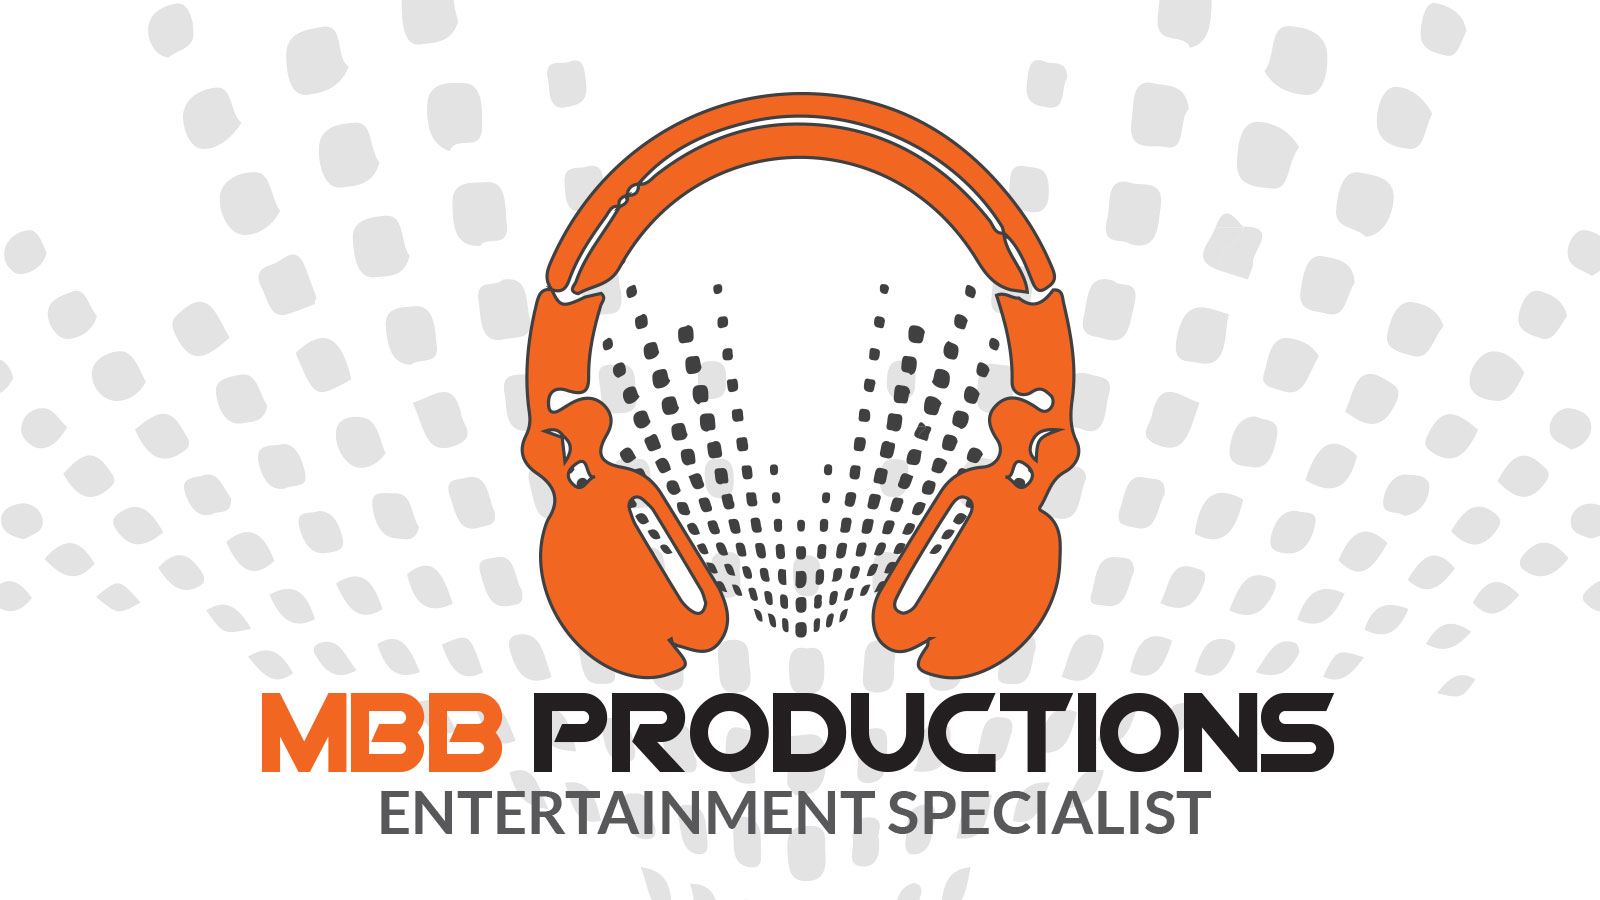 MBB Productions Entertainment Specialist